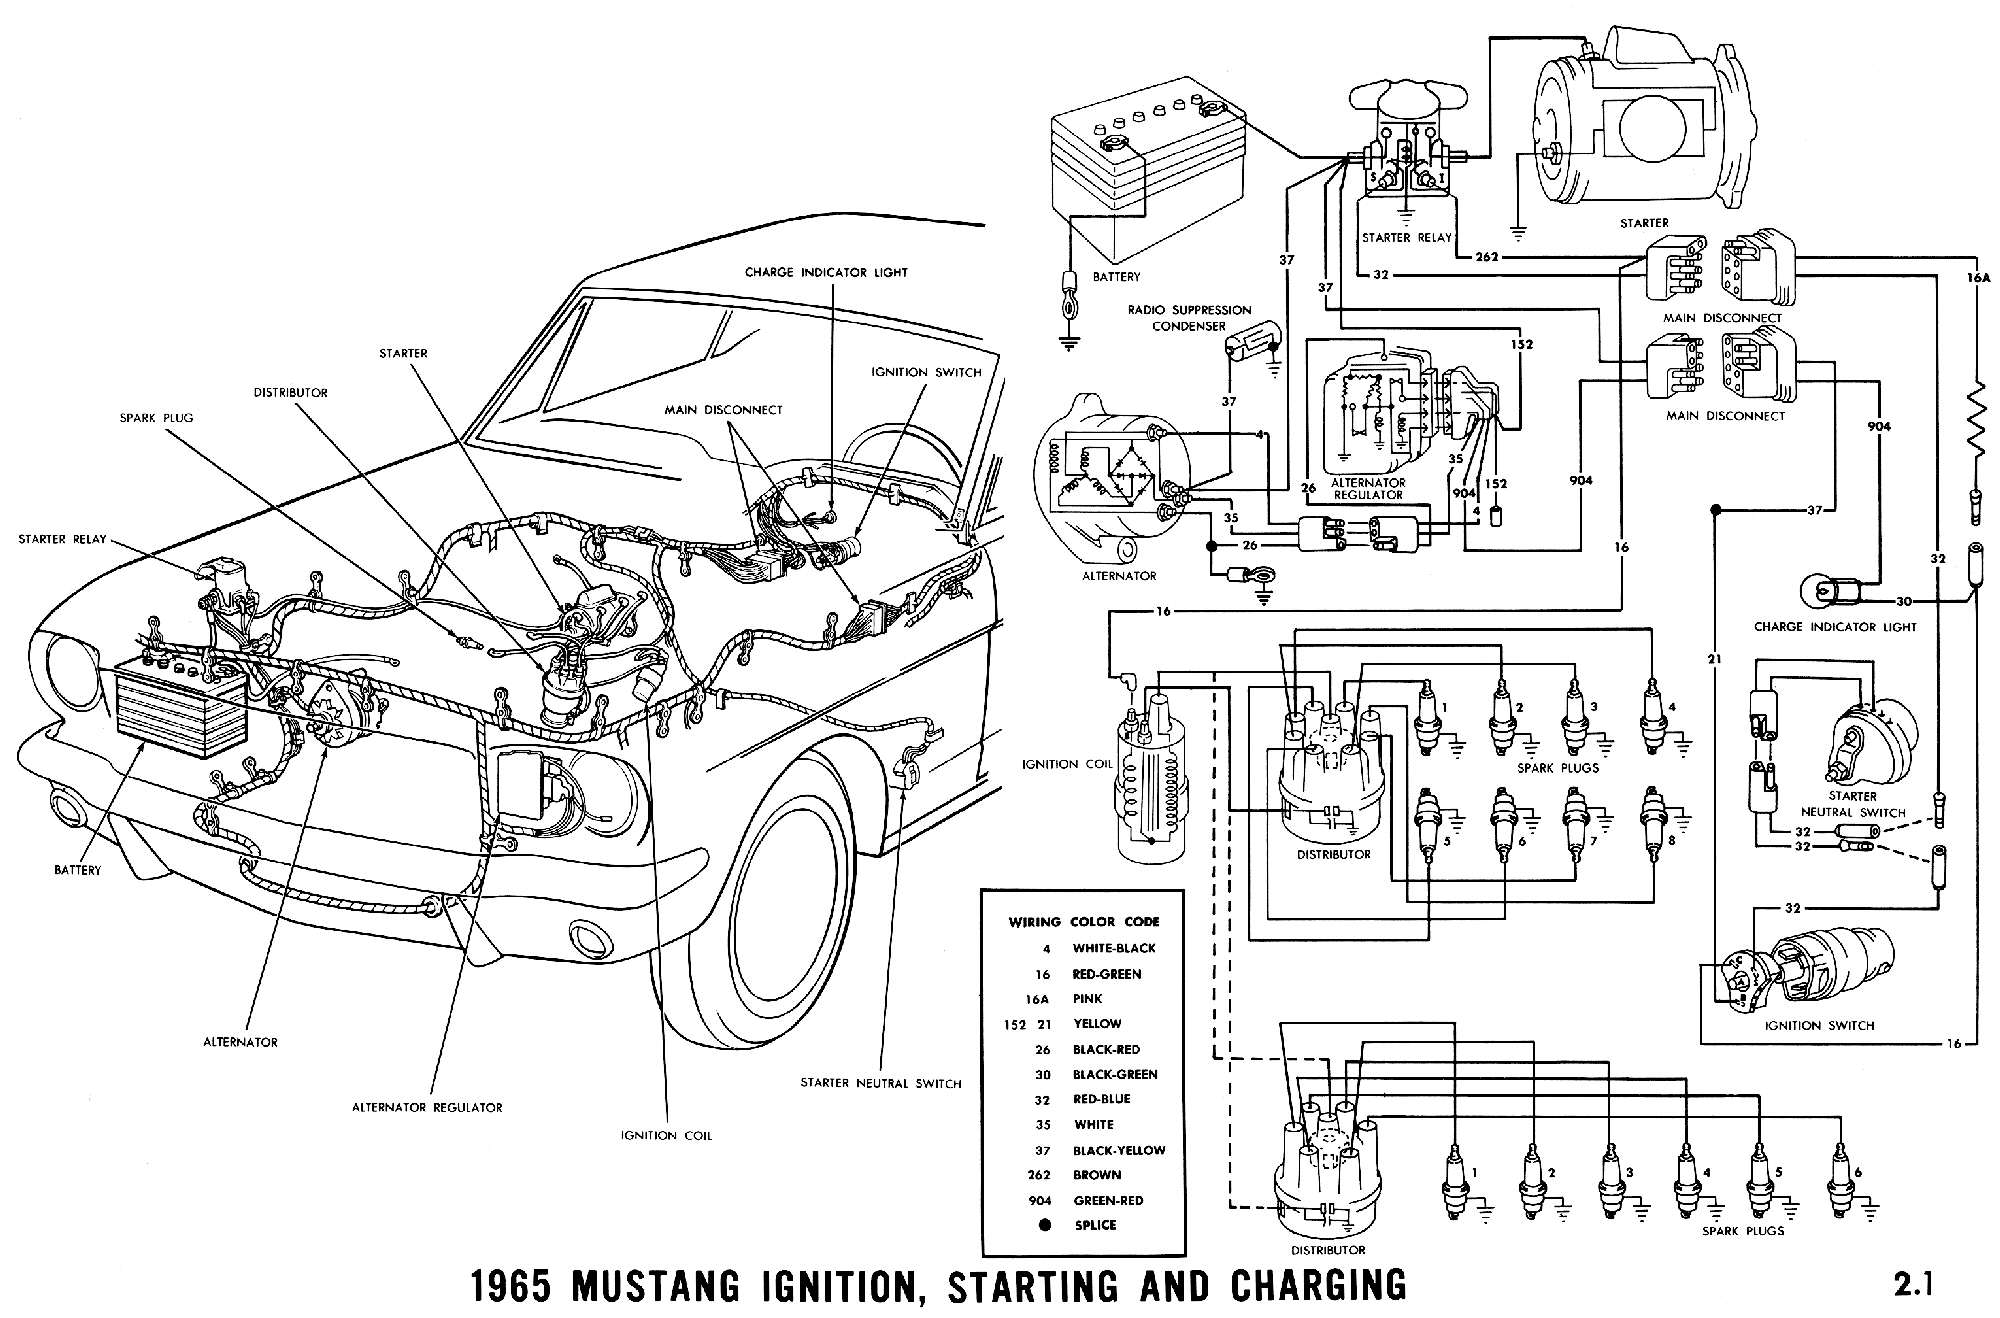 1965c 1965 mustang wiring diagrams average joe restoration 1966 mustang fuse box diagram at bayanpartner.co